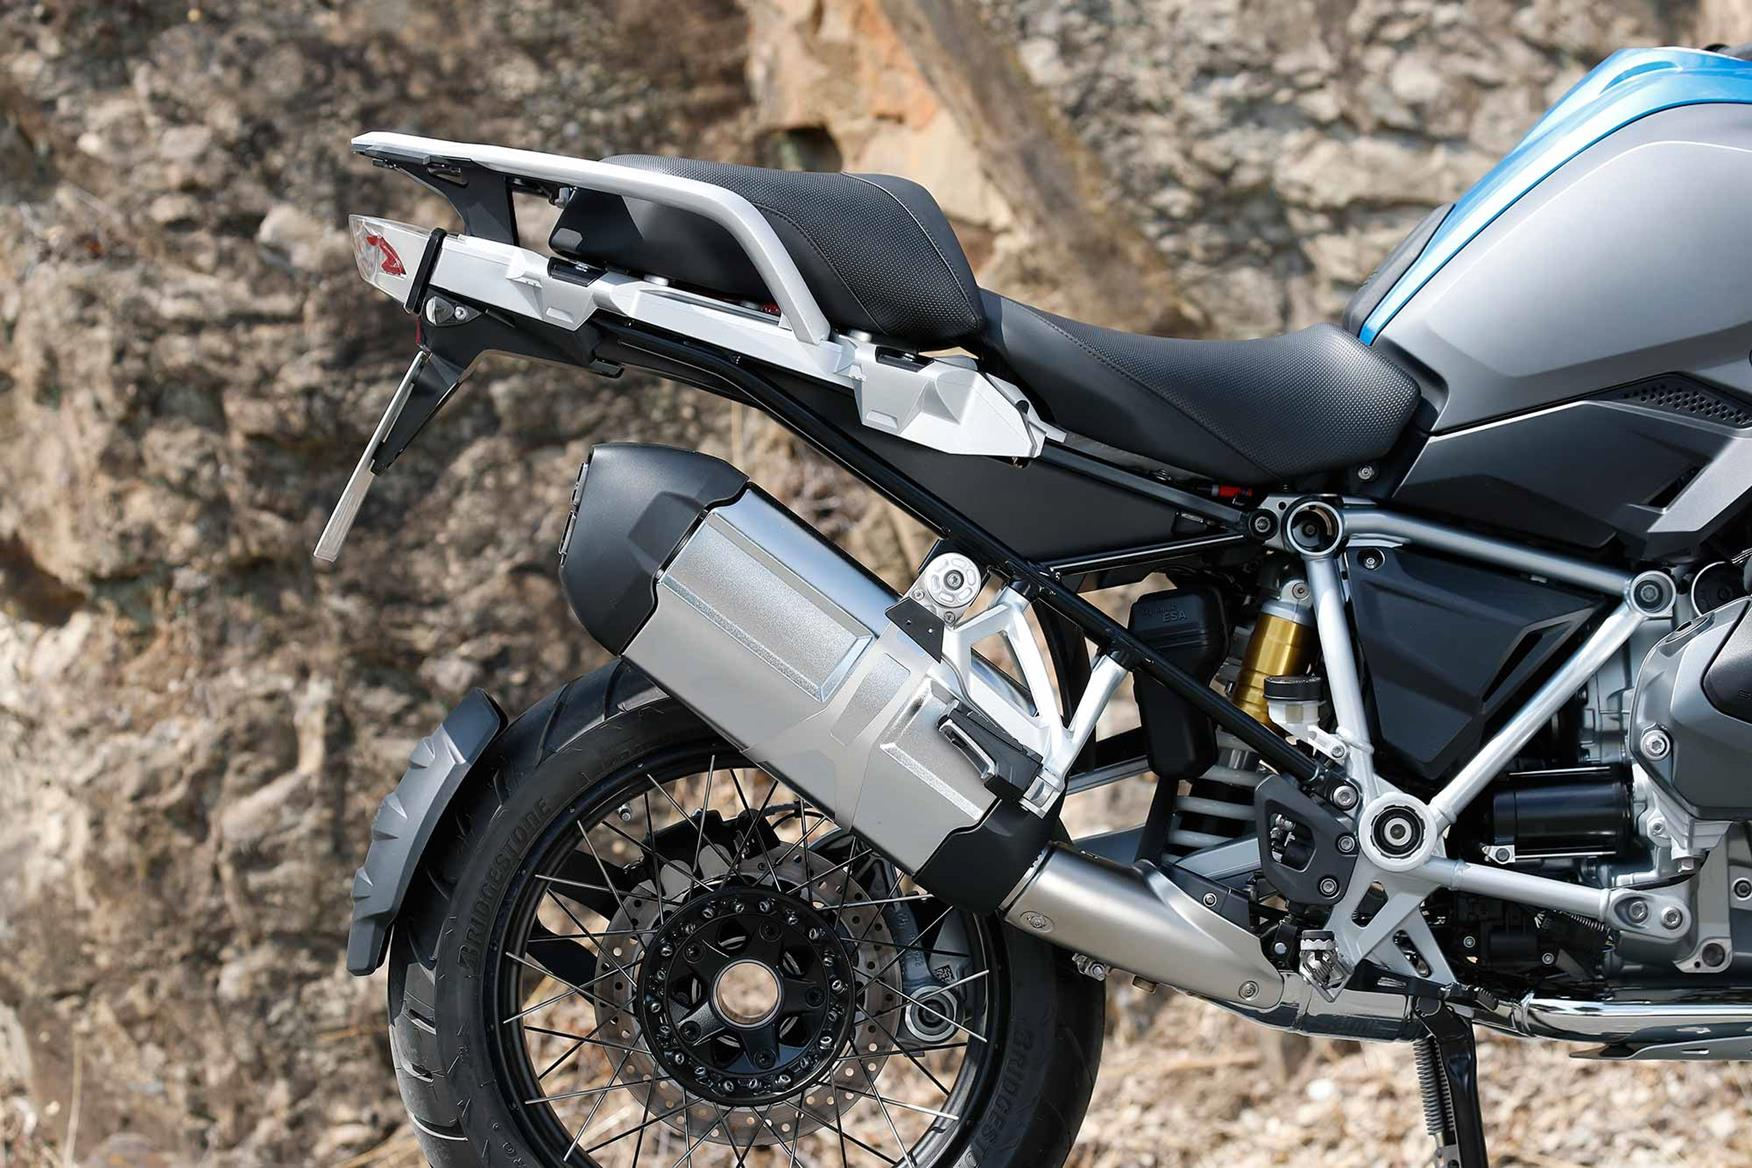 Bmw R1250gs 2019 On Review Mcn R1200c Fuse Box The Rear End Of New Retains Similar Traits To Outgoing R1200gs